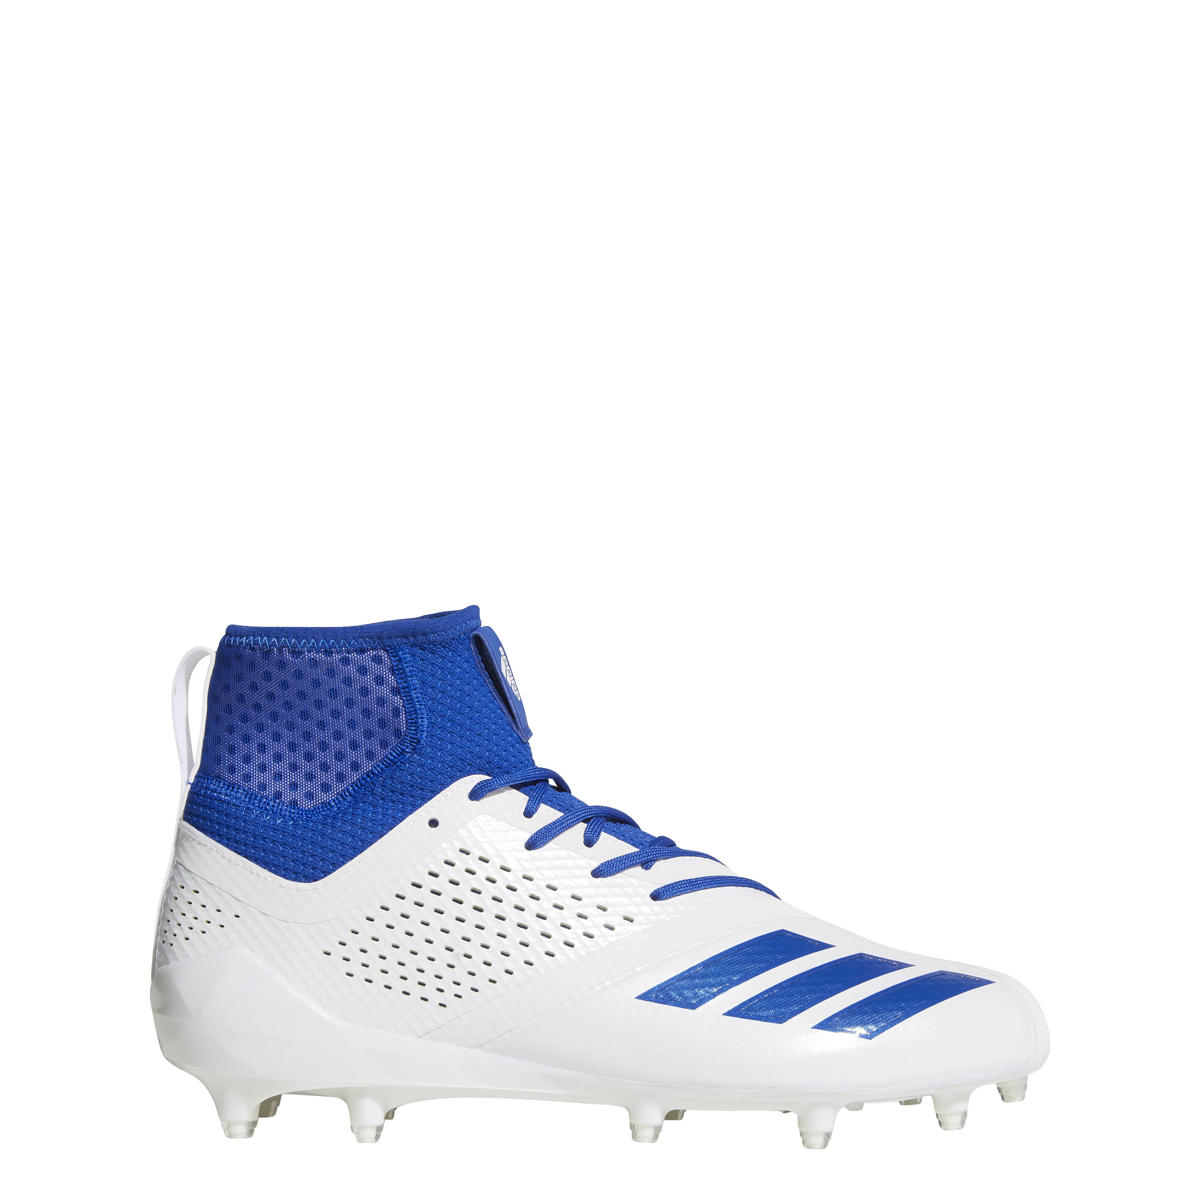 5fd3b10f051 Details about Men s Adidas Adizero 5 Star 7.0 SK Football Cleat  White Collegiate Royal